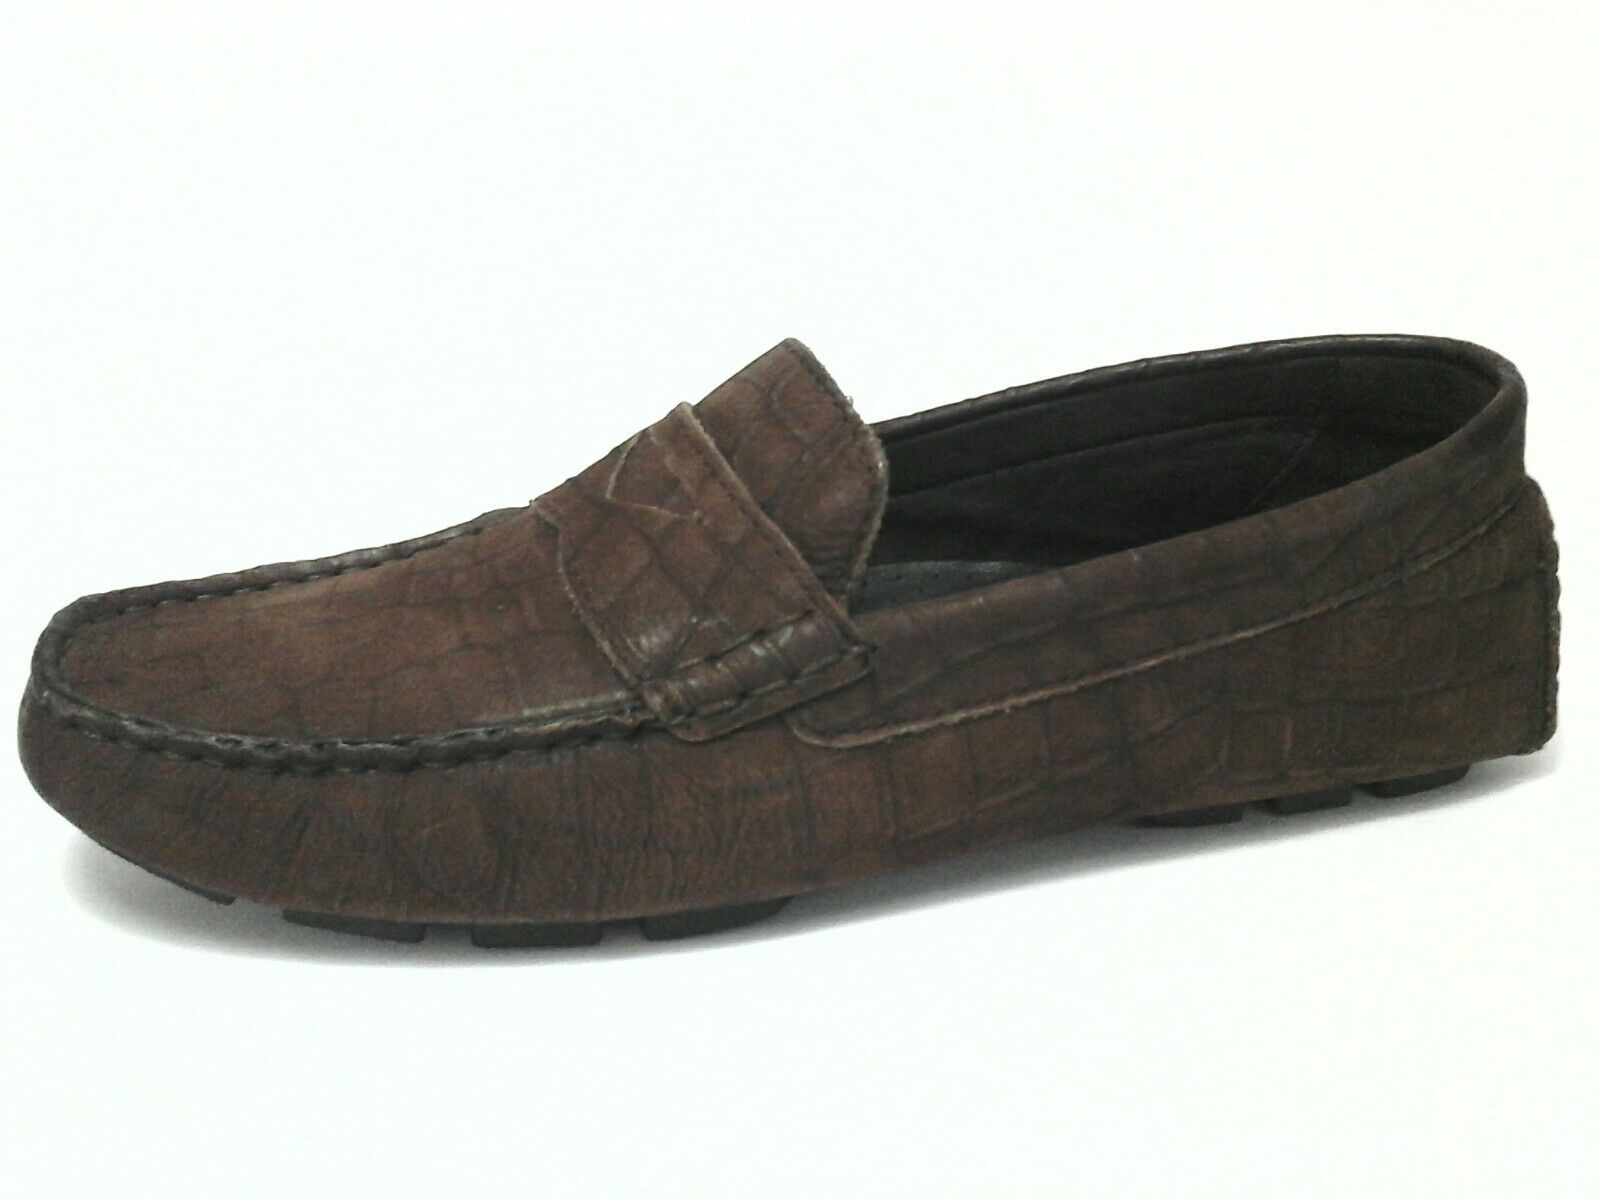 COLE HAAN Womens Shoes Driving Loafers Brown Croc Leather Comfort US 7.5/38 $160